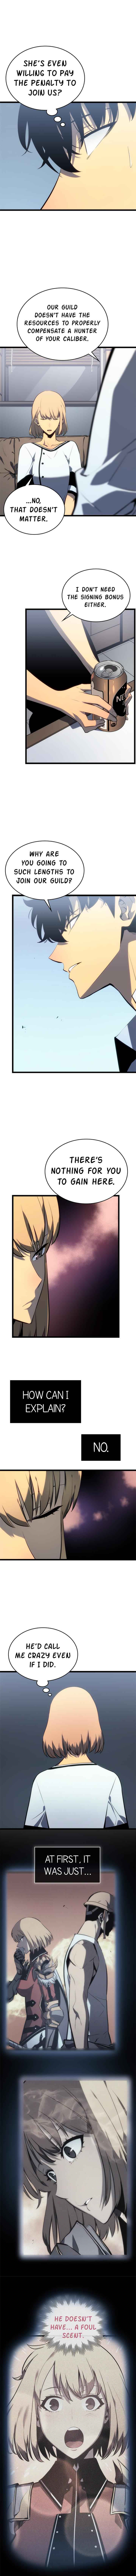 Solo Leveling Chapter 112 Page 6